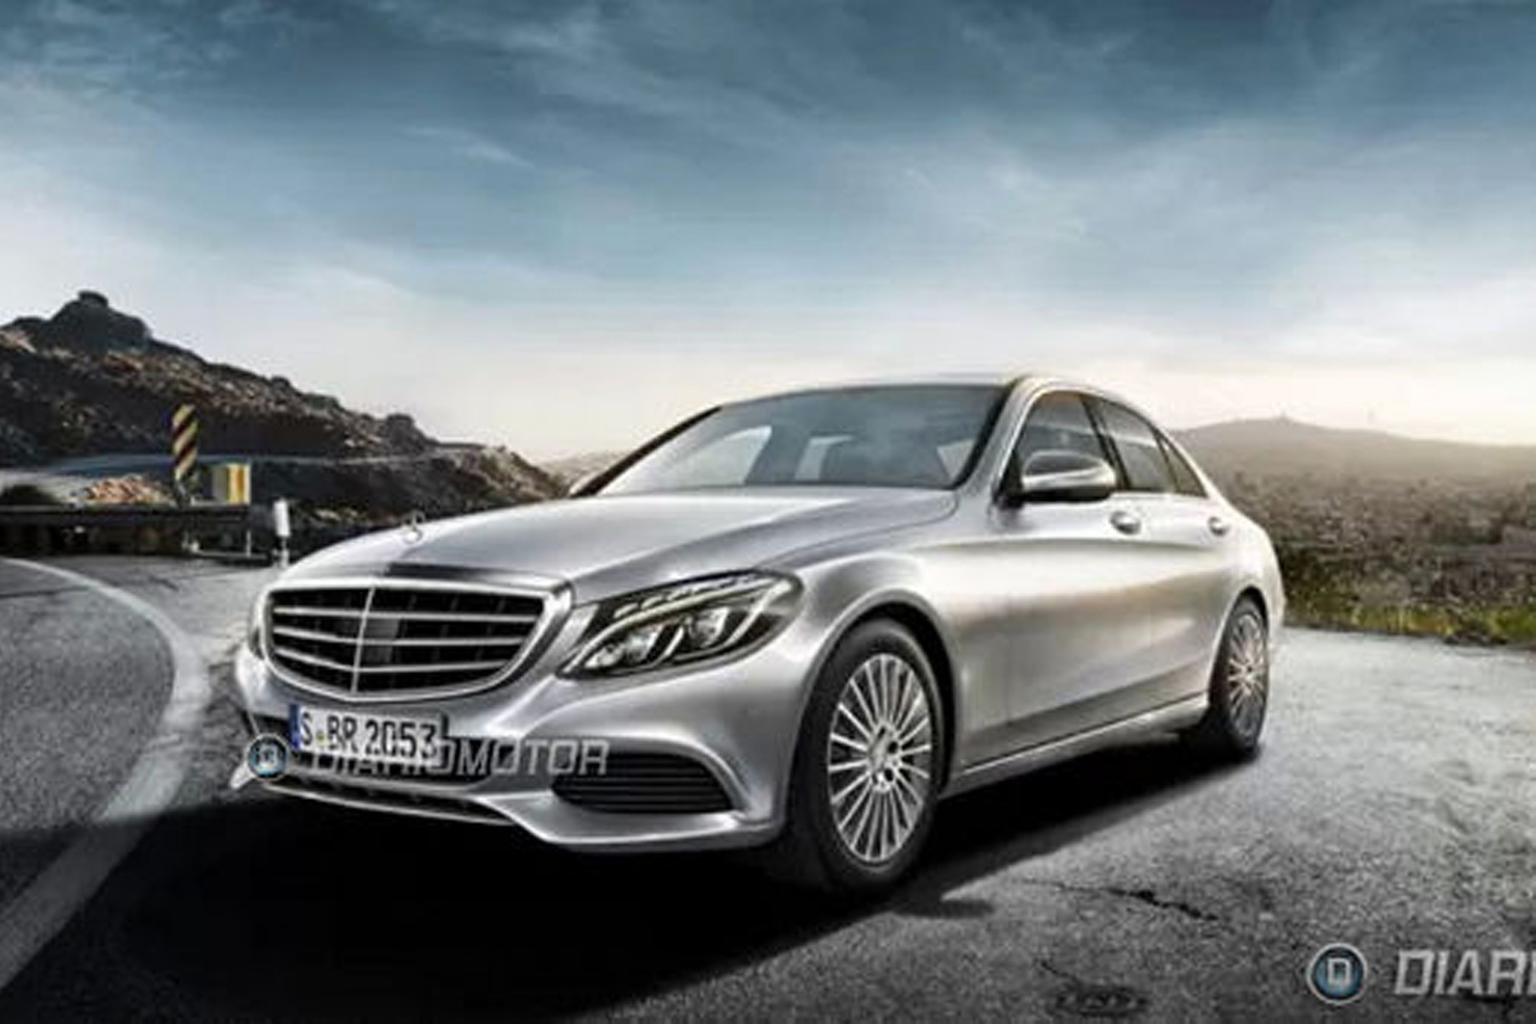 2014 Mercedes C-Class pictures leaked online